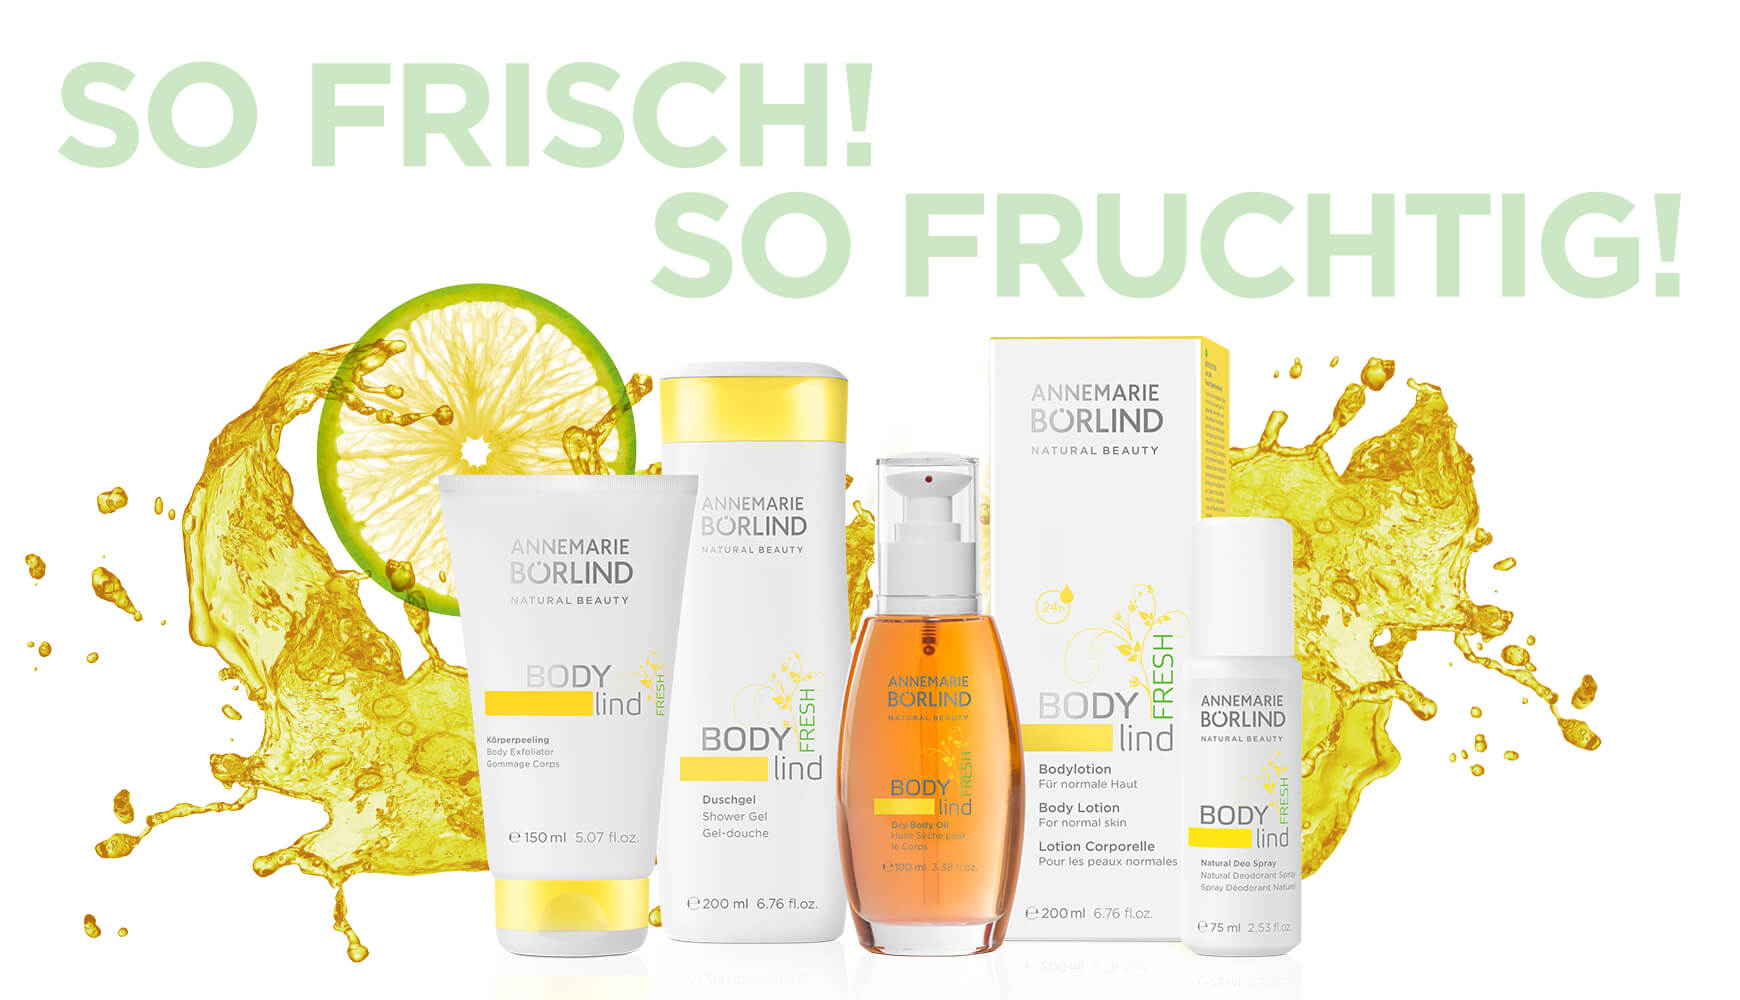 ANNEMARIE BÖRLIND BODY lind FRESH – So frisch! So fruchtig!